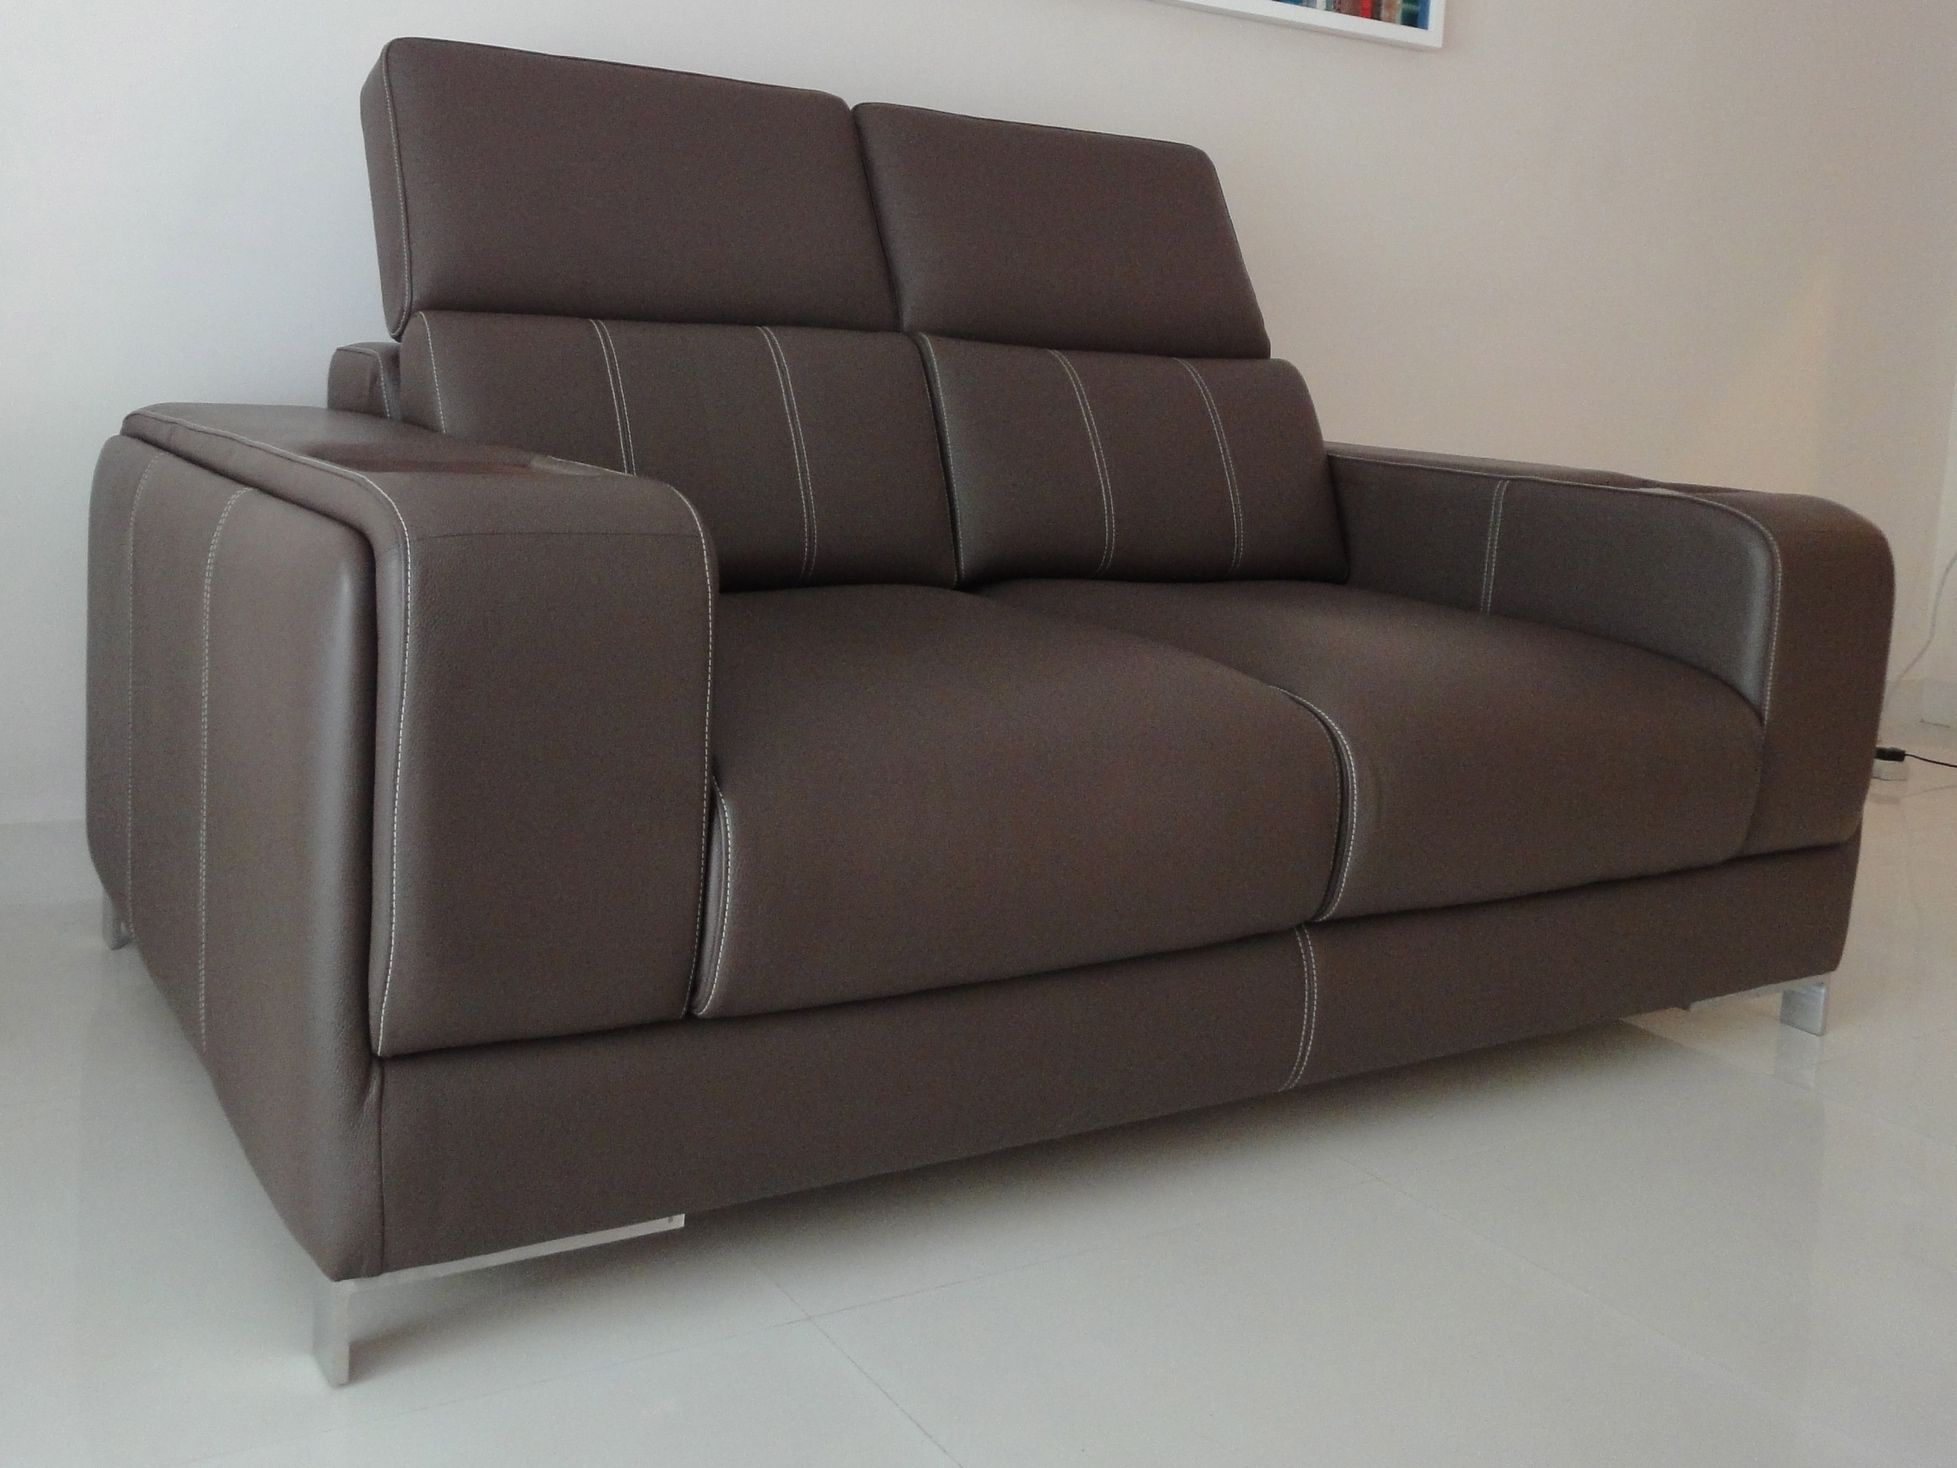 Karlsson Leather offers customized leather furniture like sofa